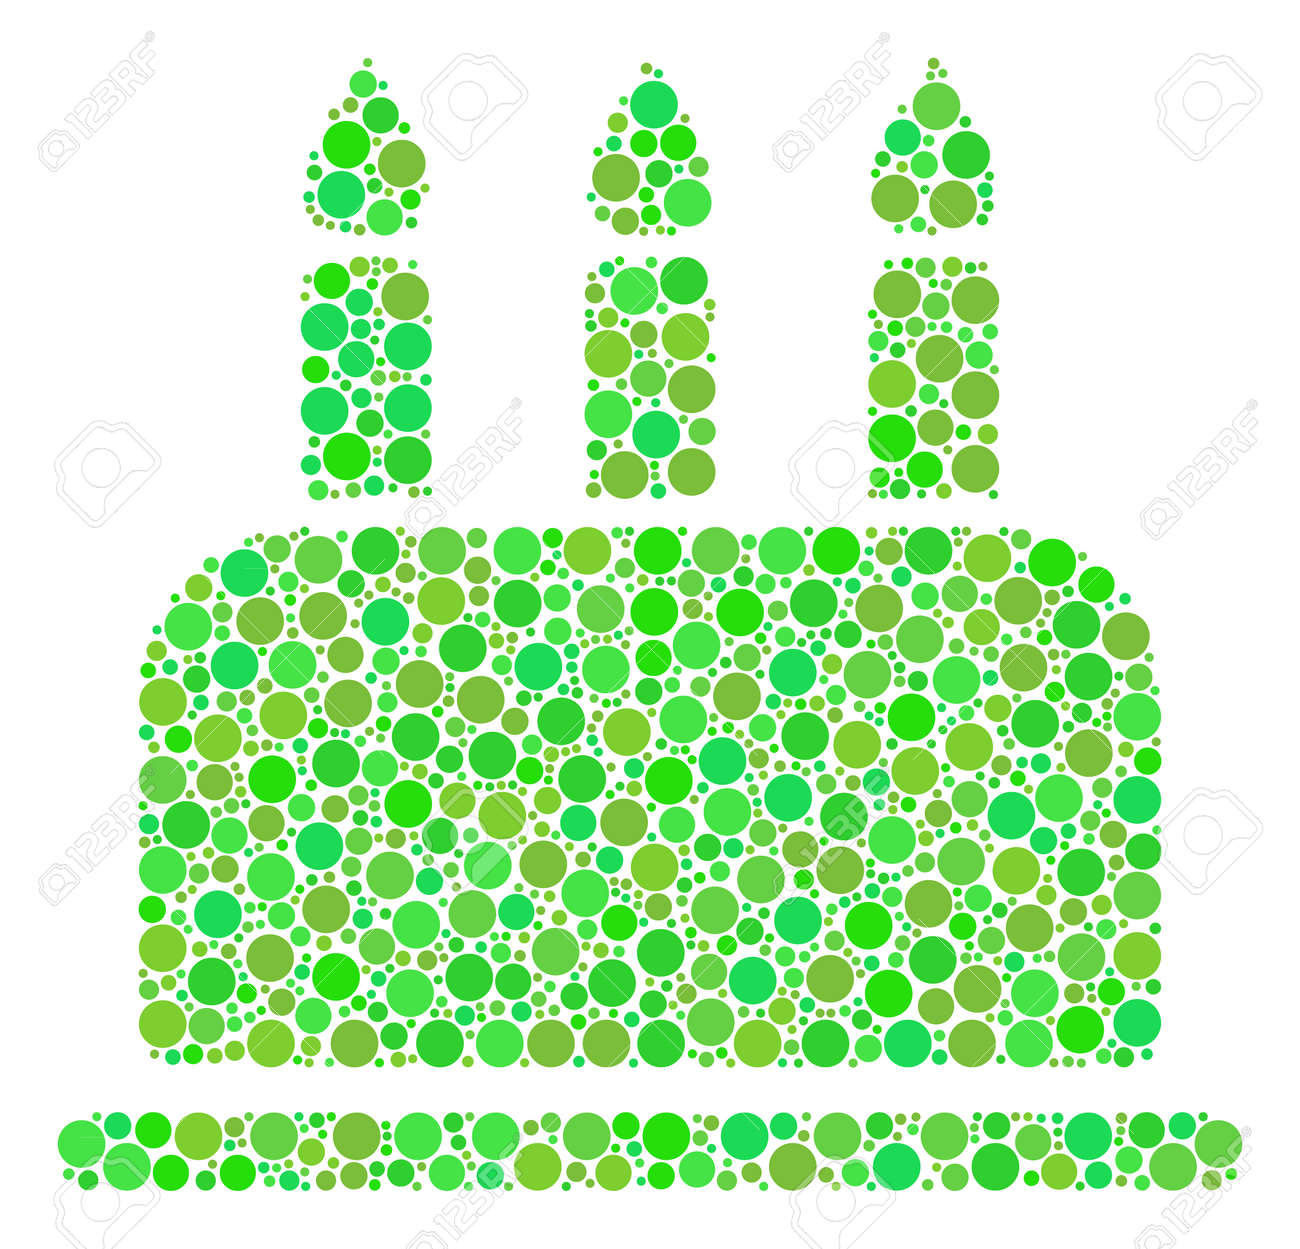 Birthday Cake Mosaic Of Dots In Various Sizes And Eco Green Shades Raster Circle Elements